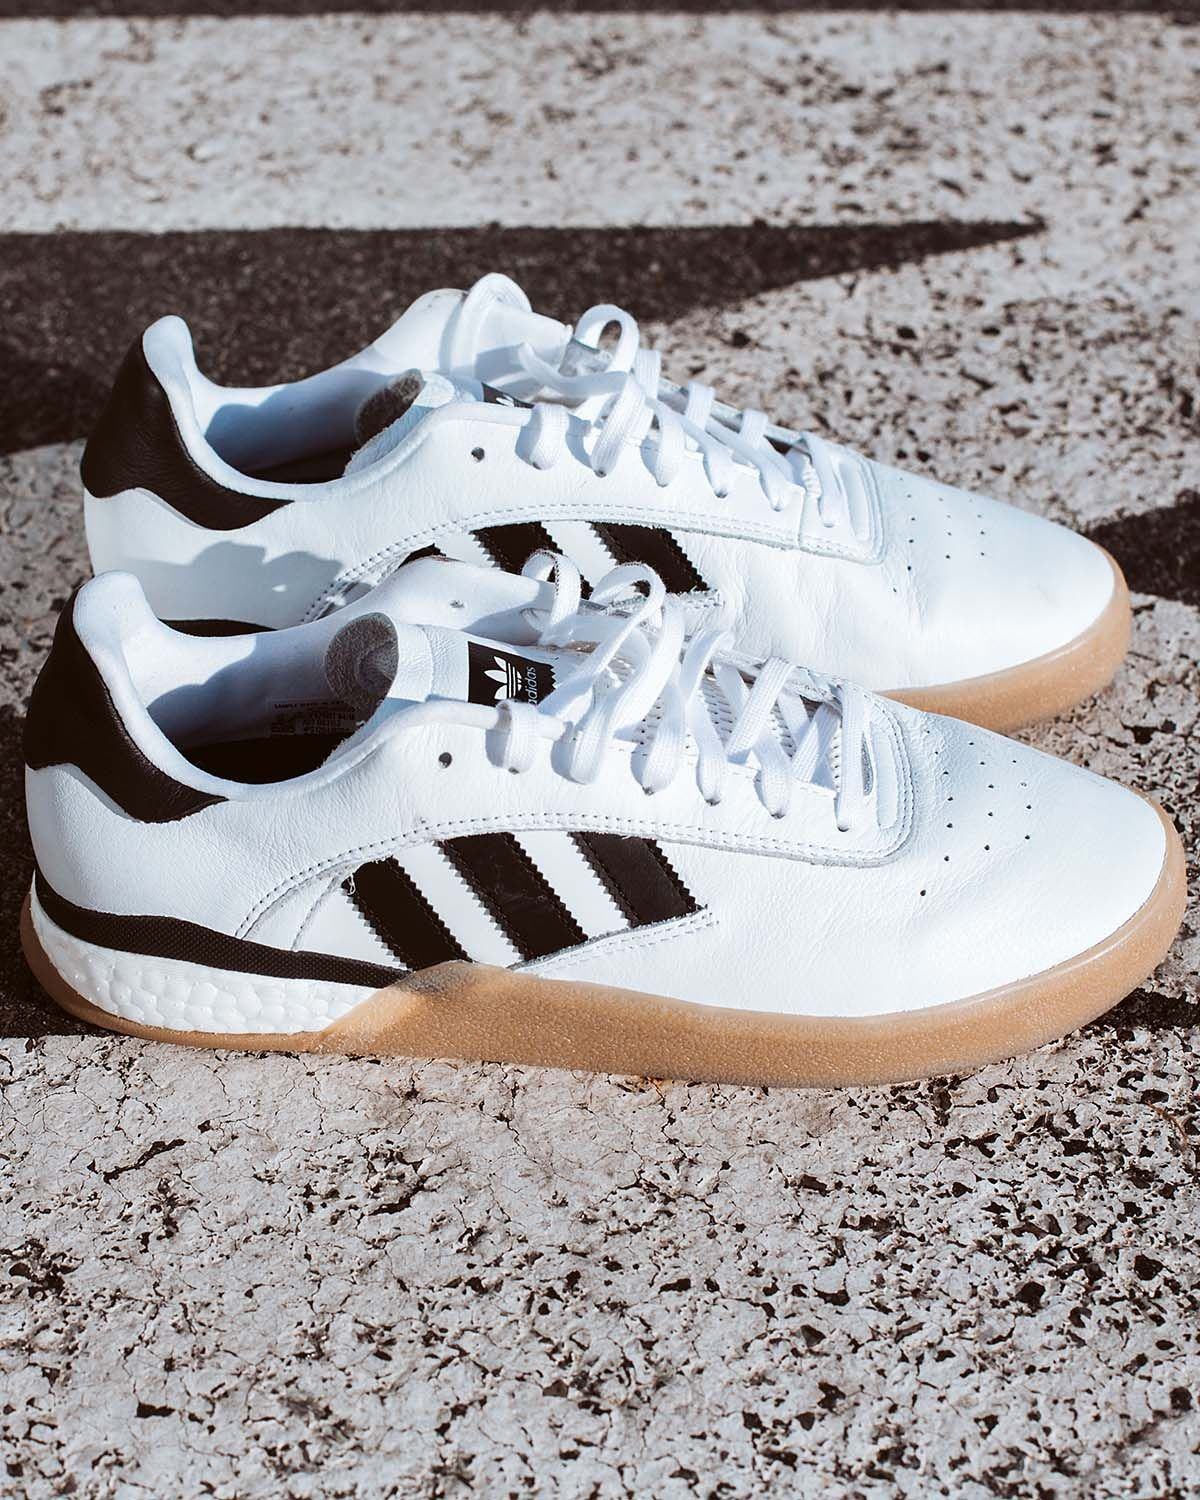 Bringing back the Boost technology ☁ Check out all adidas